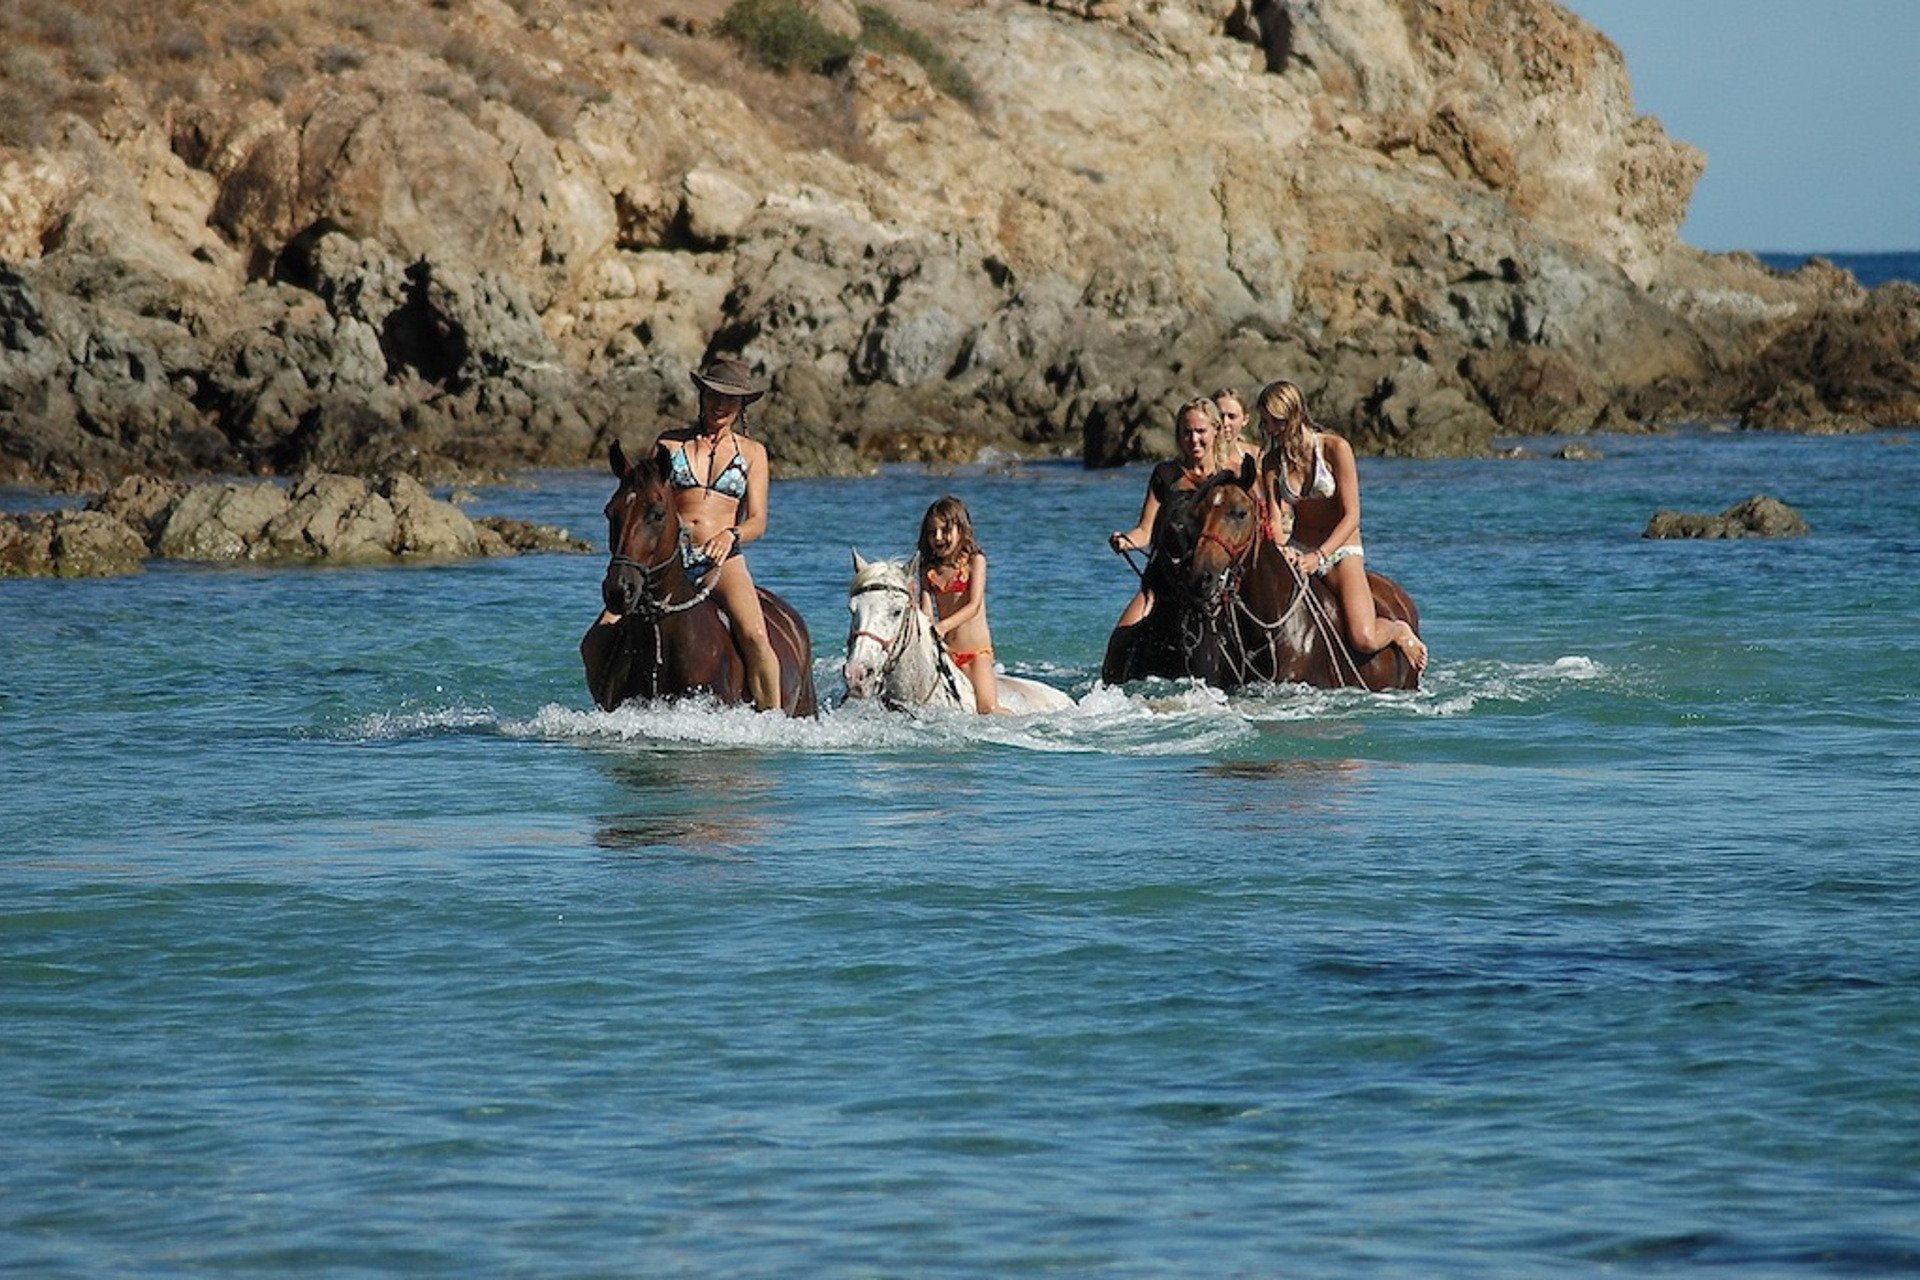 Five horses with their riders strolling in shallow water along the Corsican coast